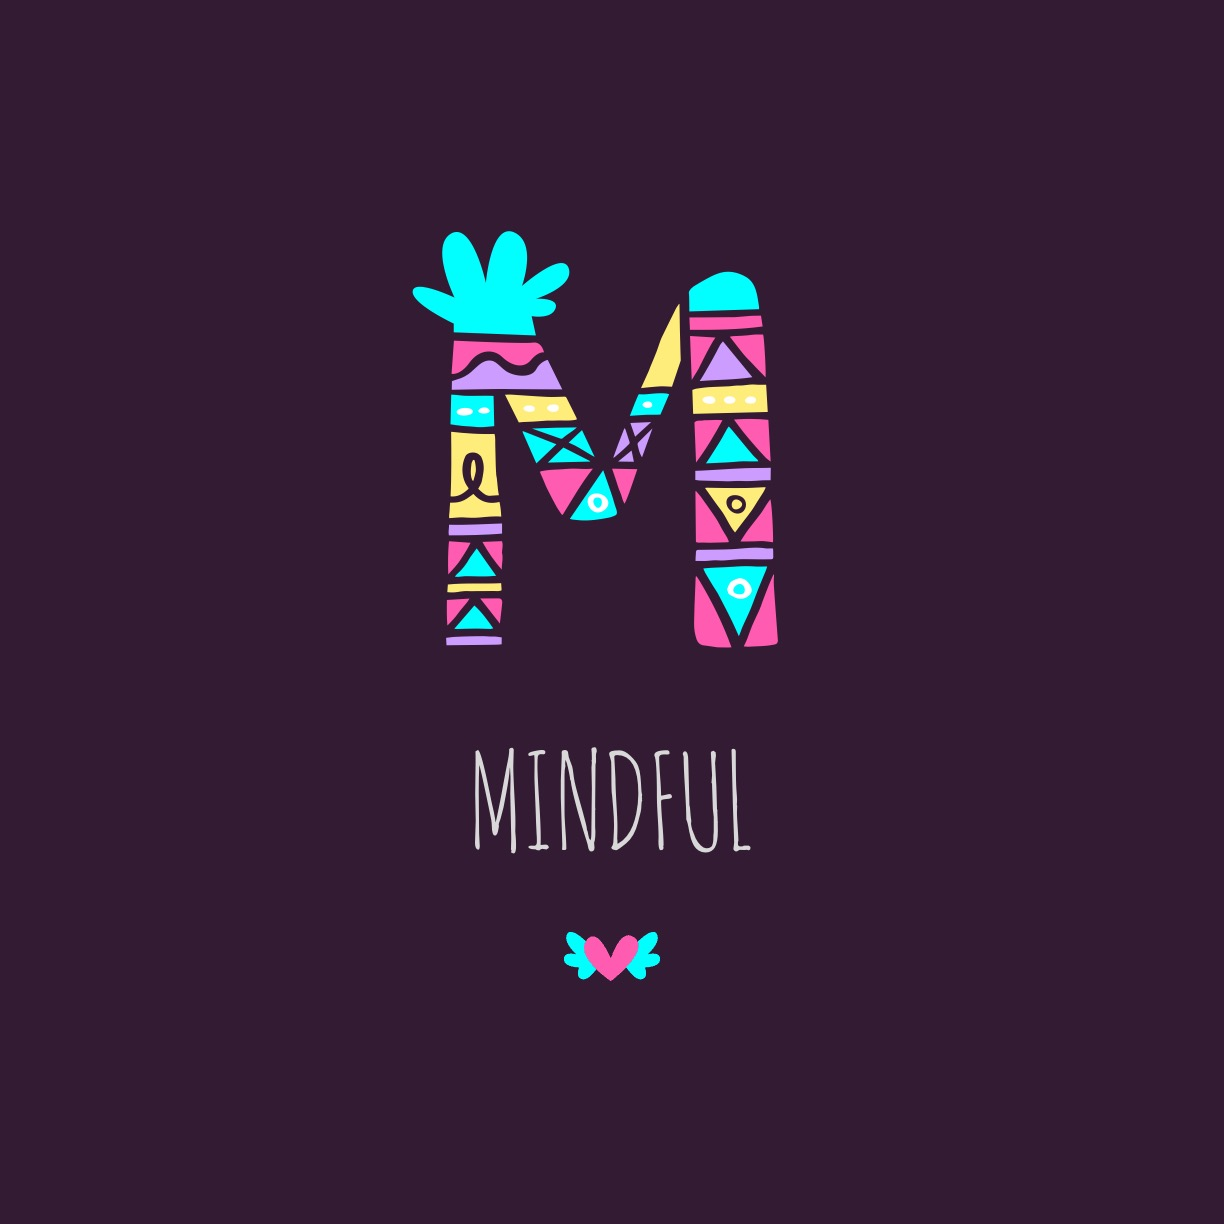 Mindful image made with the notegraphy app.